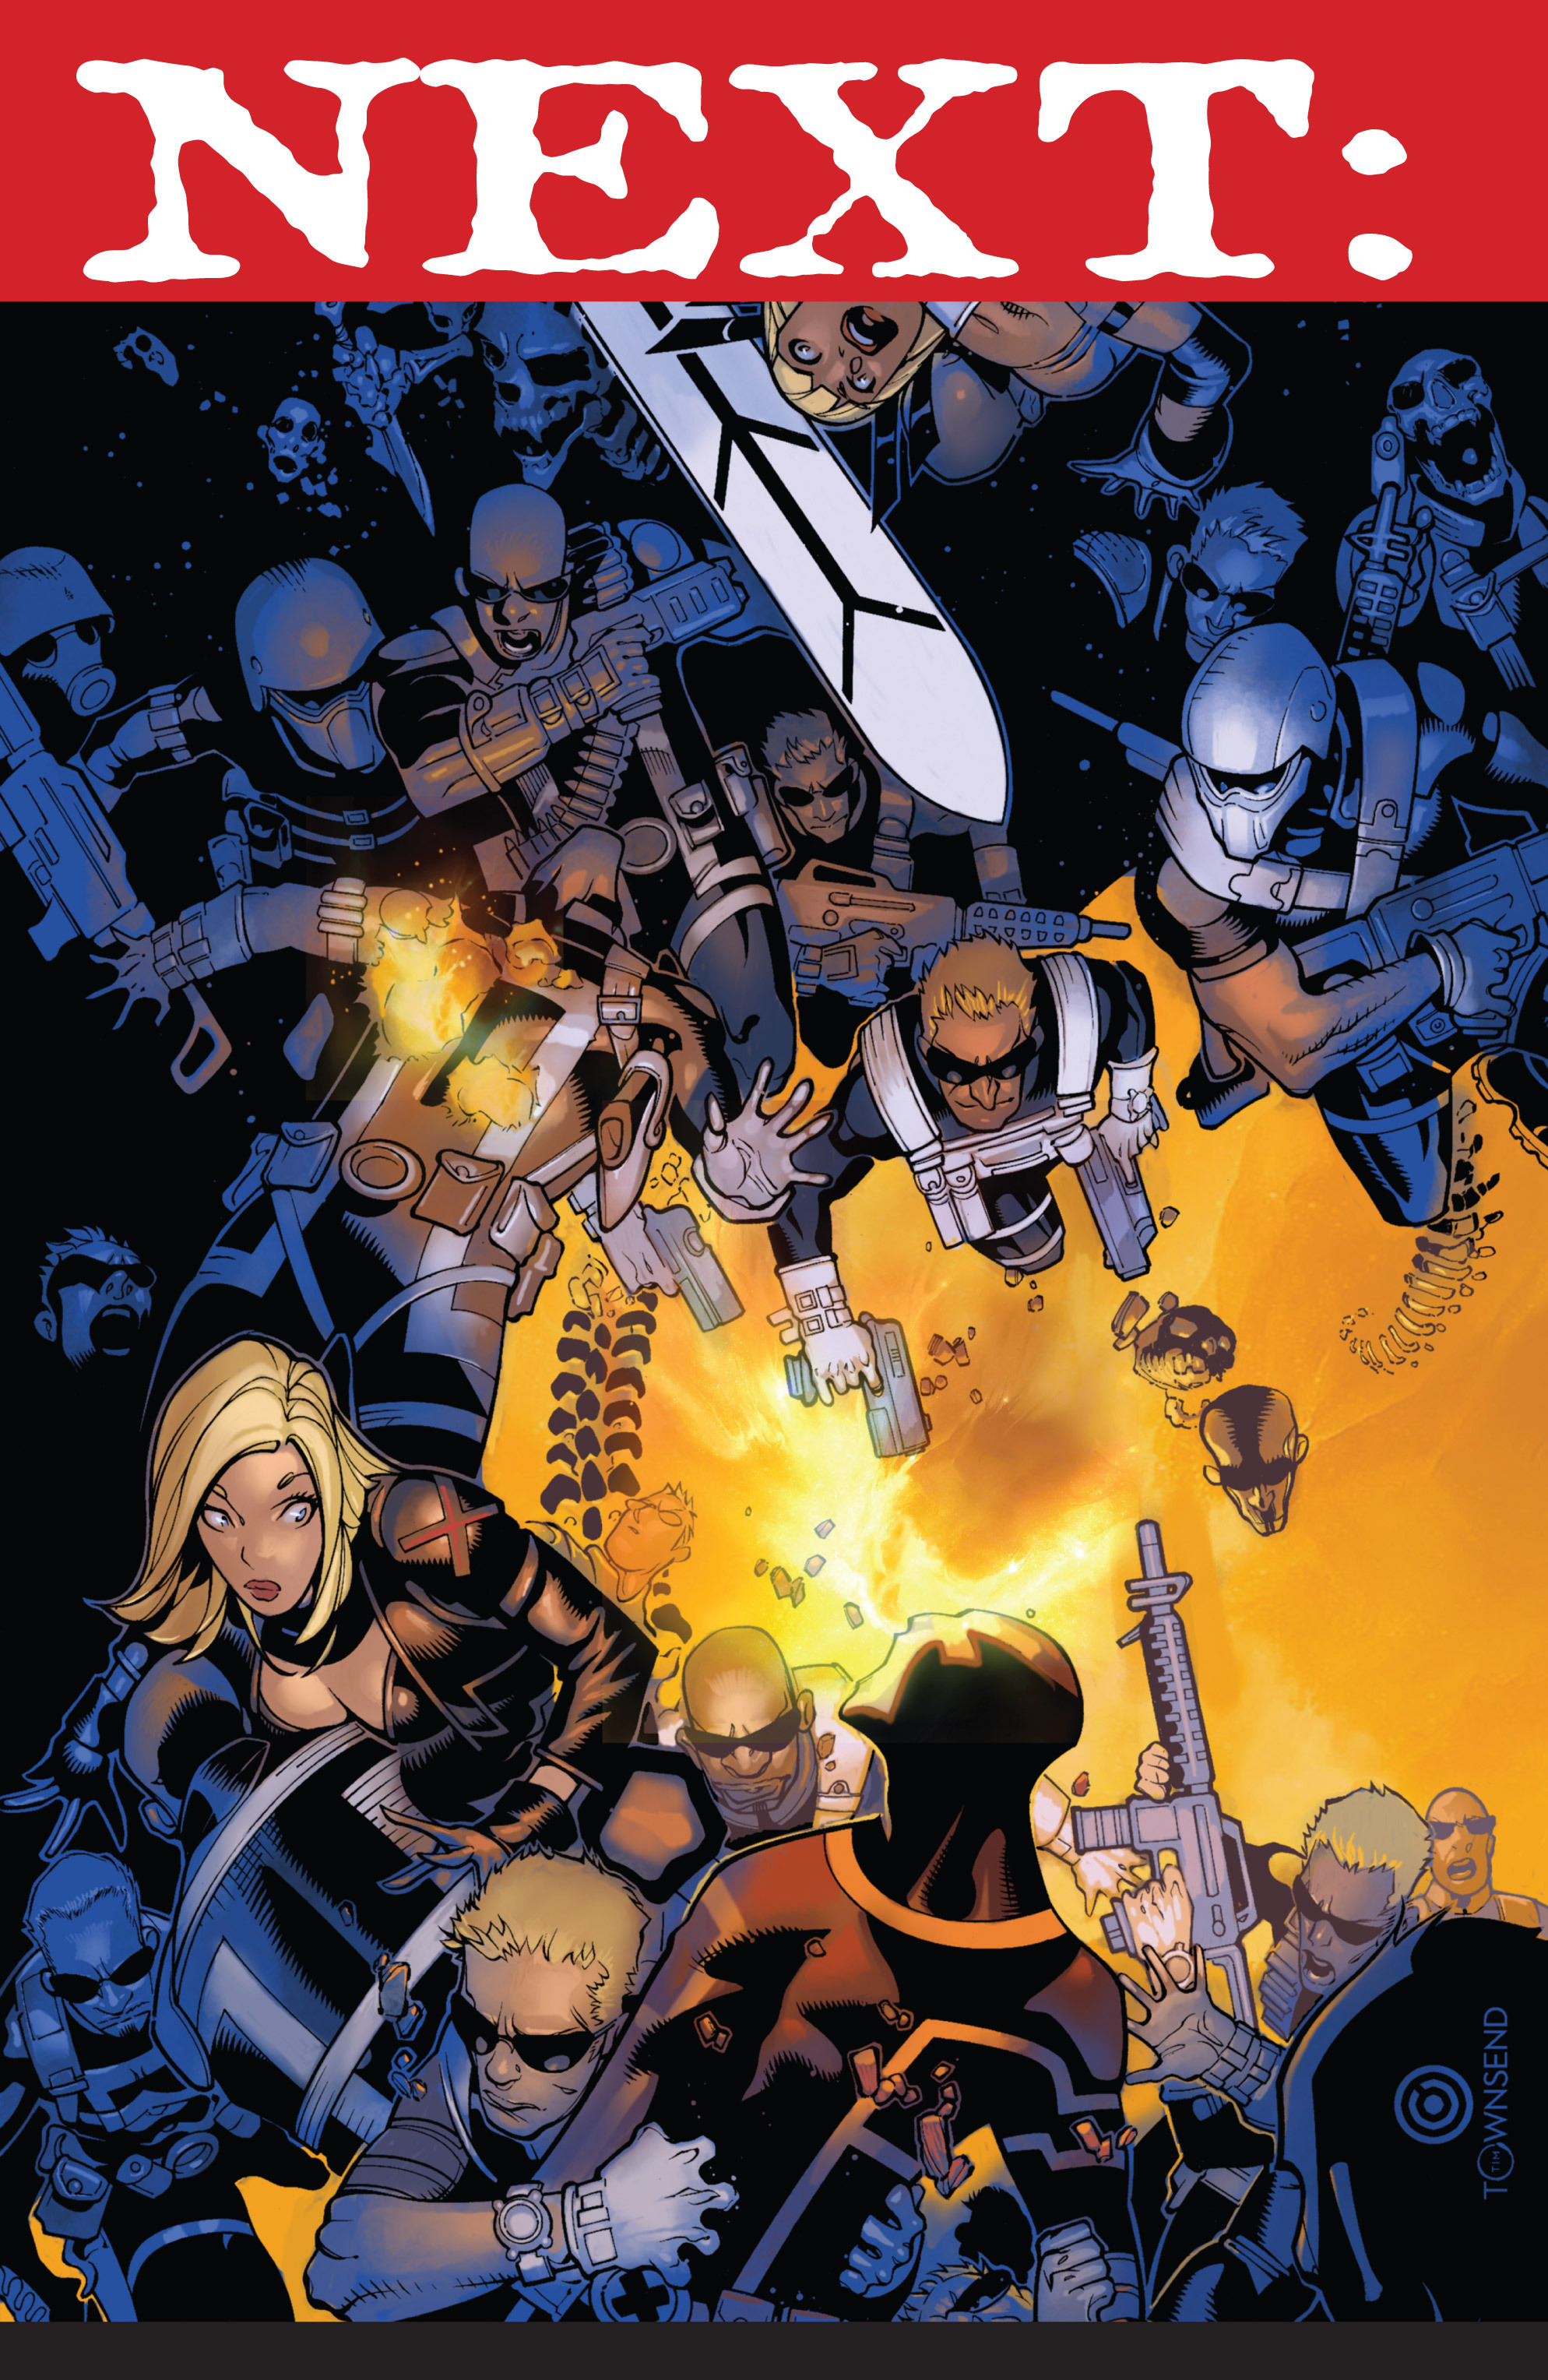 Read online Uncanny X-Men (2013) comic -  Issue # _TPB 3 - The Good, The Bad, The Inhuman - 105